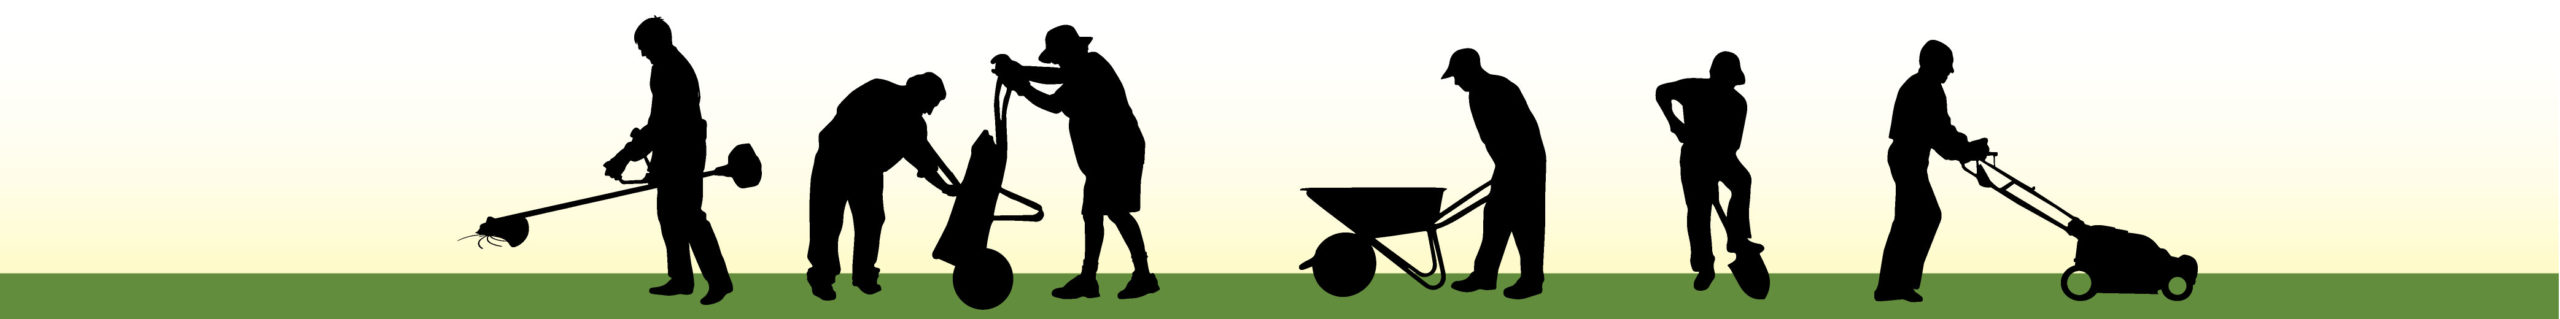 Lawn Worker Graphic